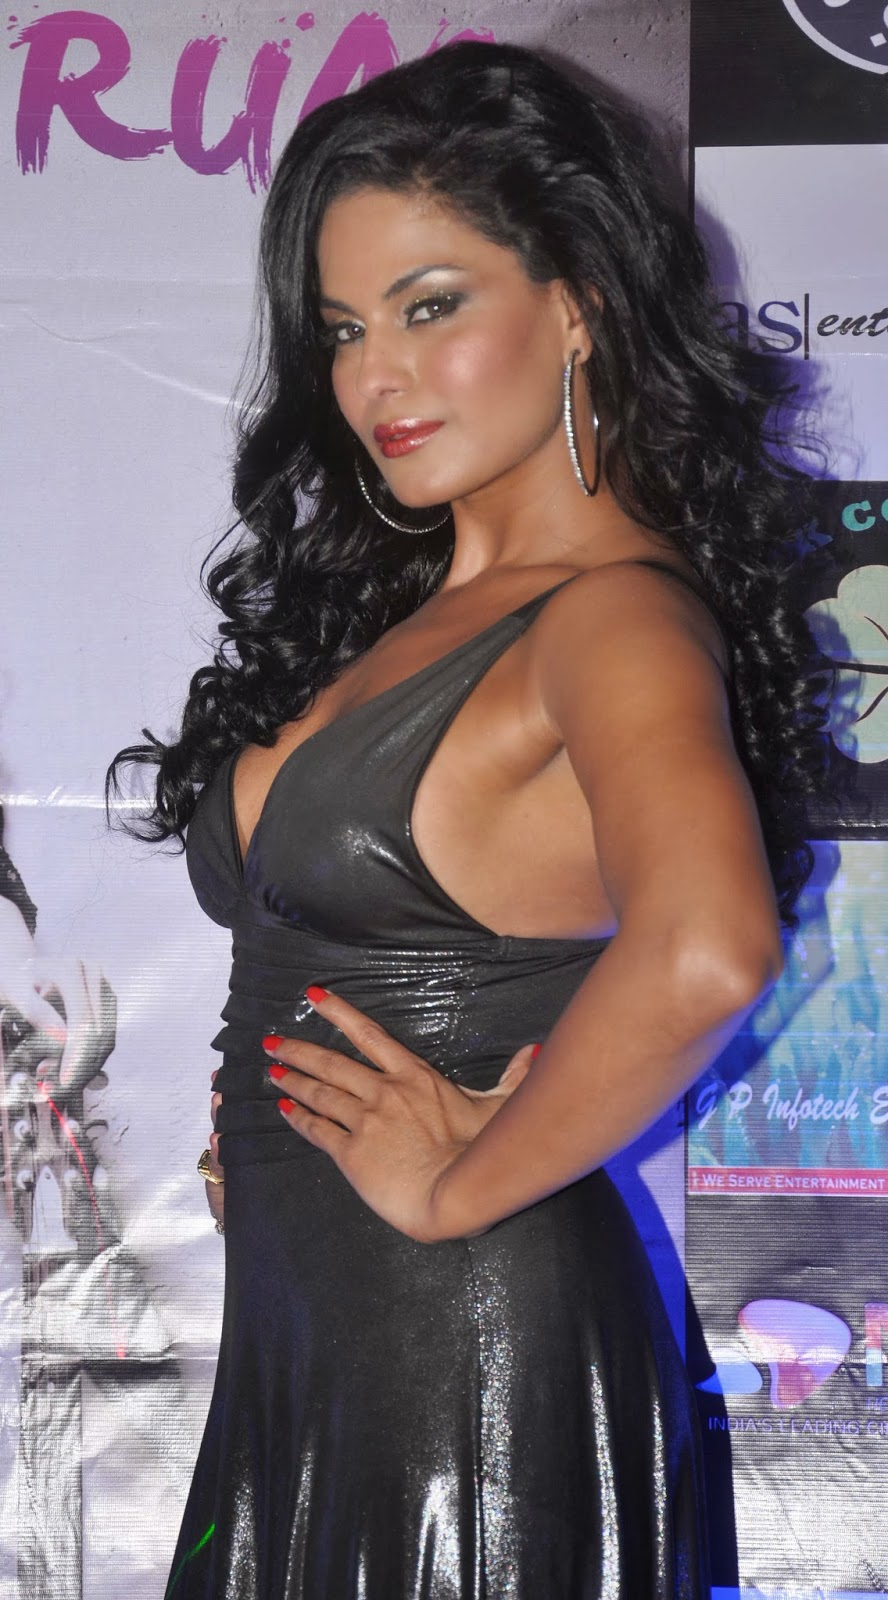 Hot and sexy pics of veena malik